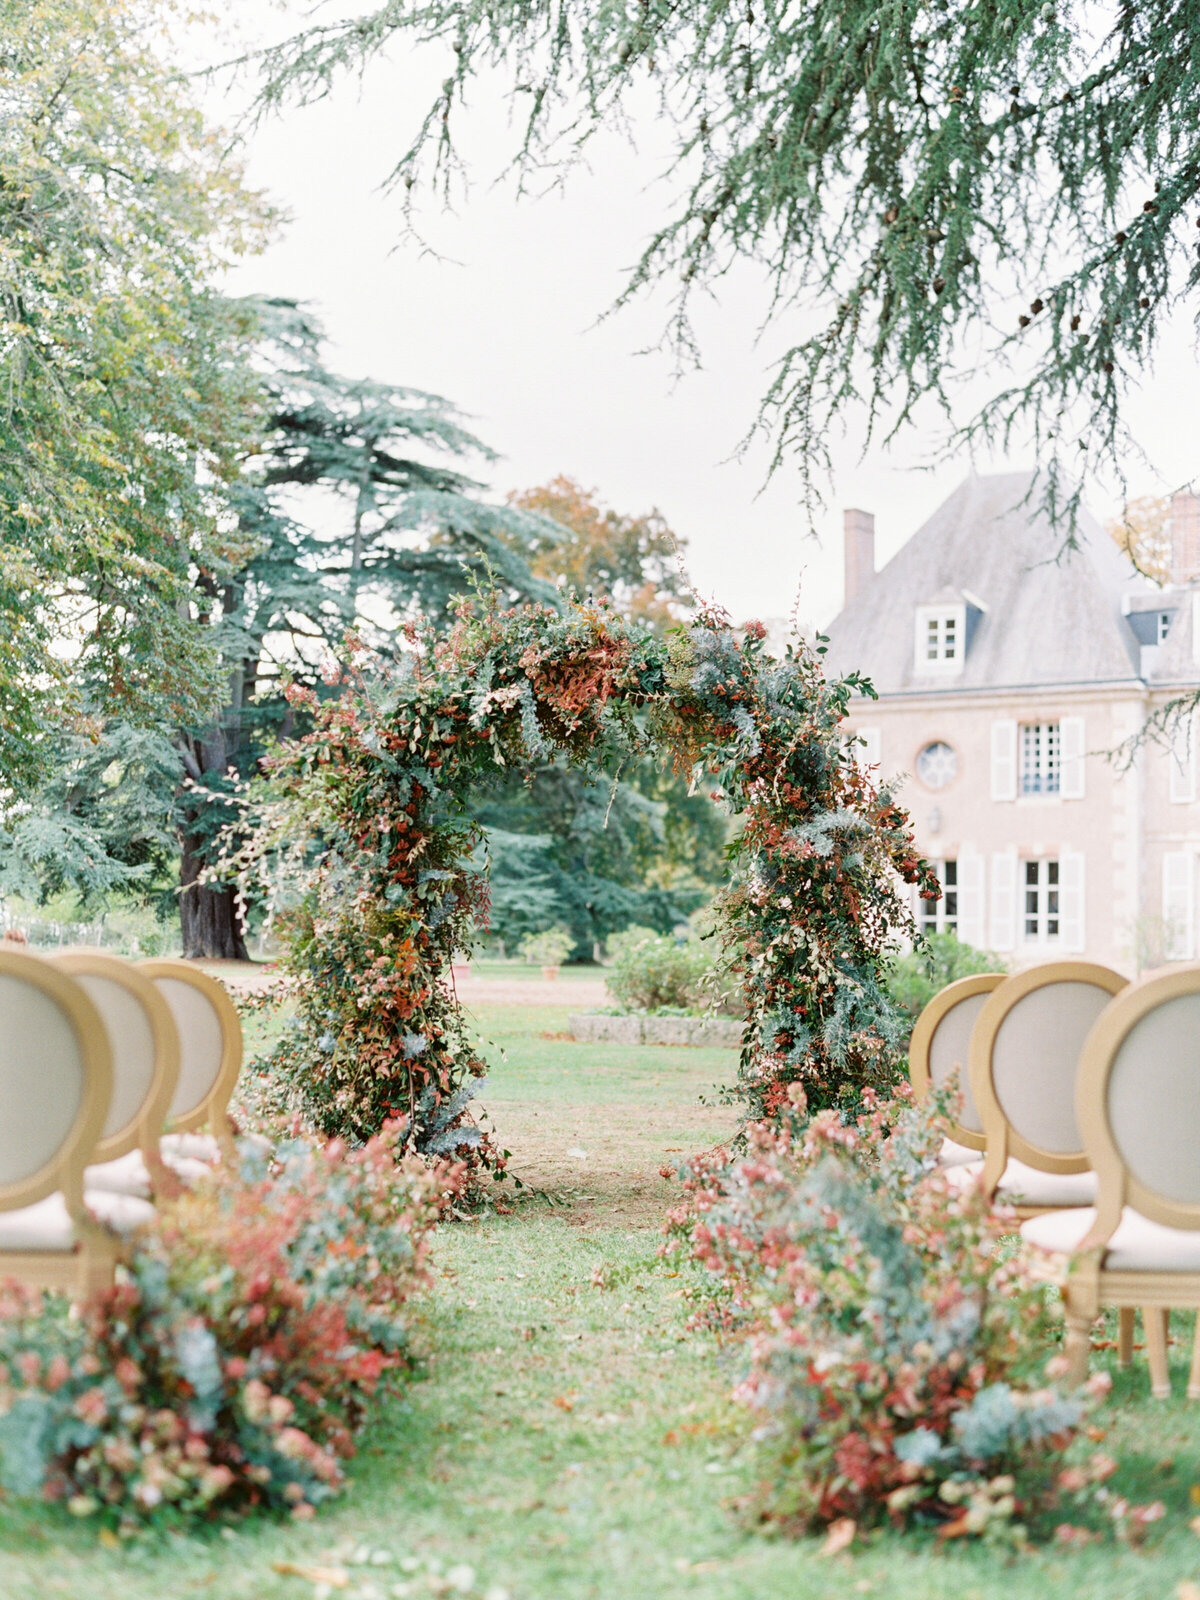 chateau-bouthonvilliers-wedding-paris-wedding-photographer-mackenzie-reiter-photography-22